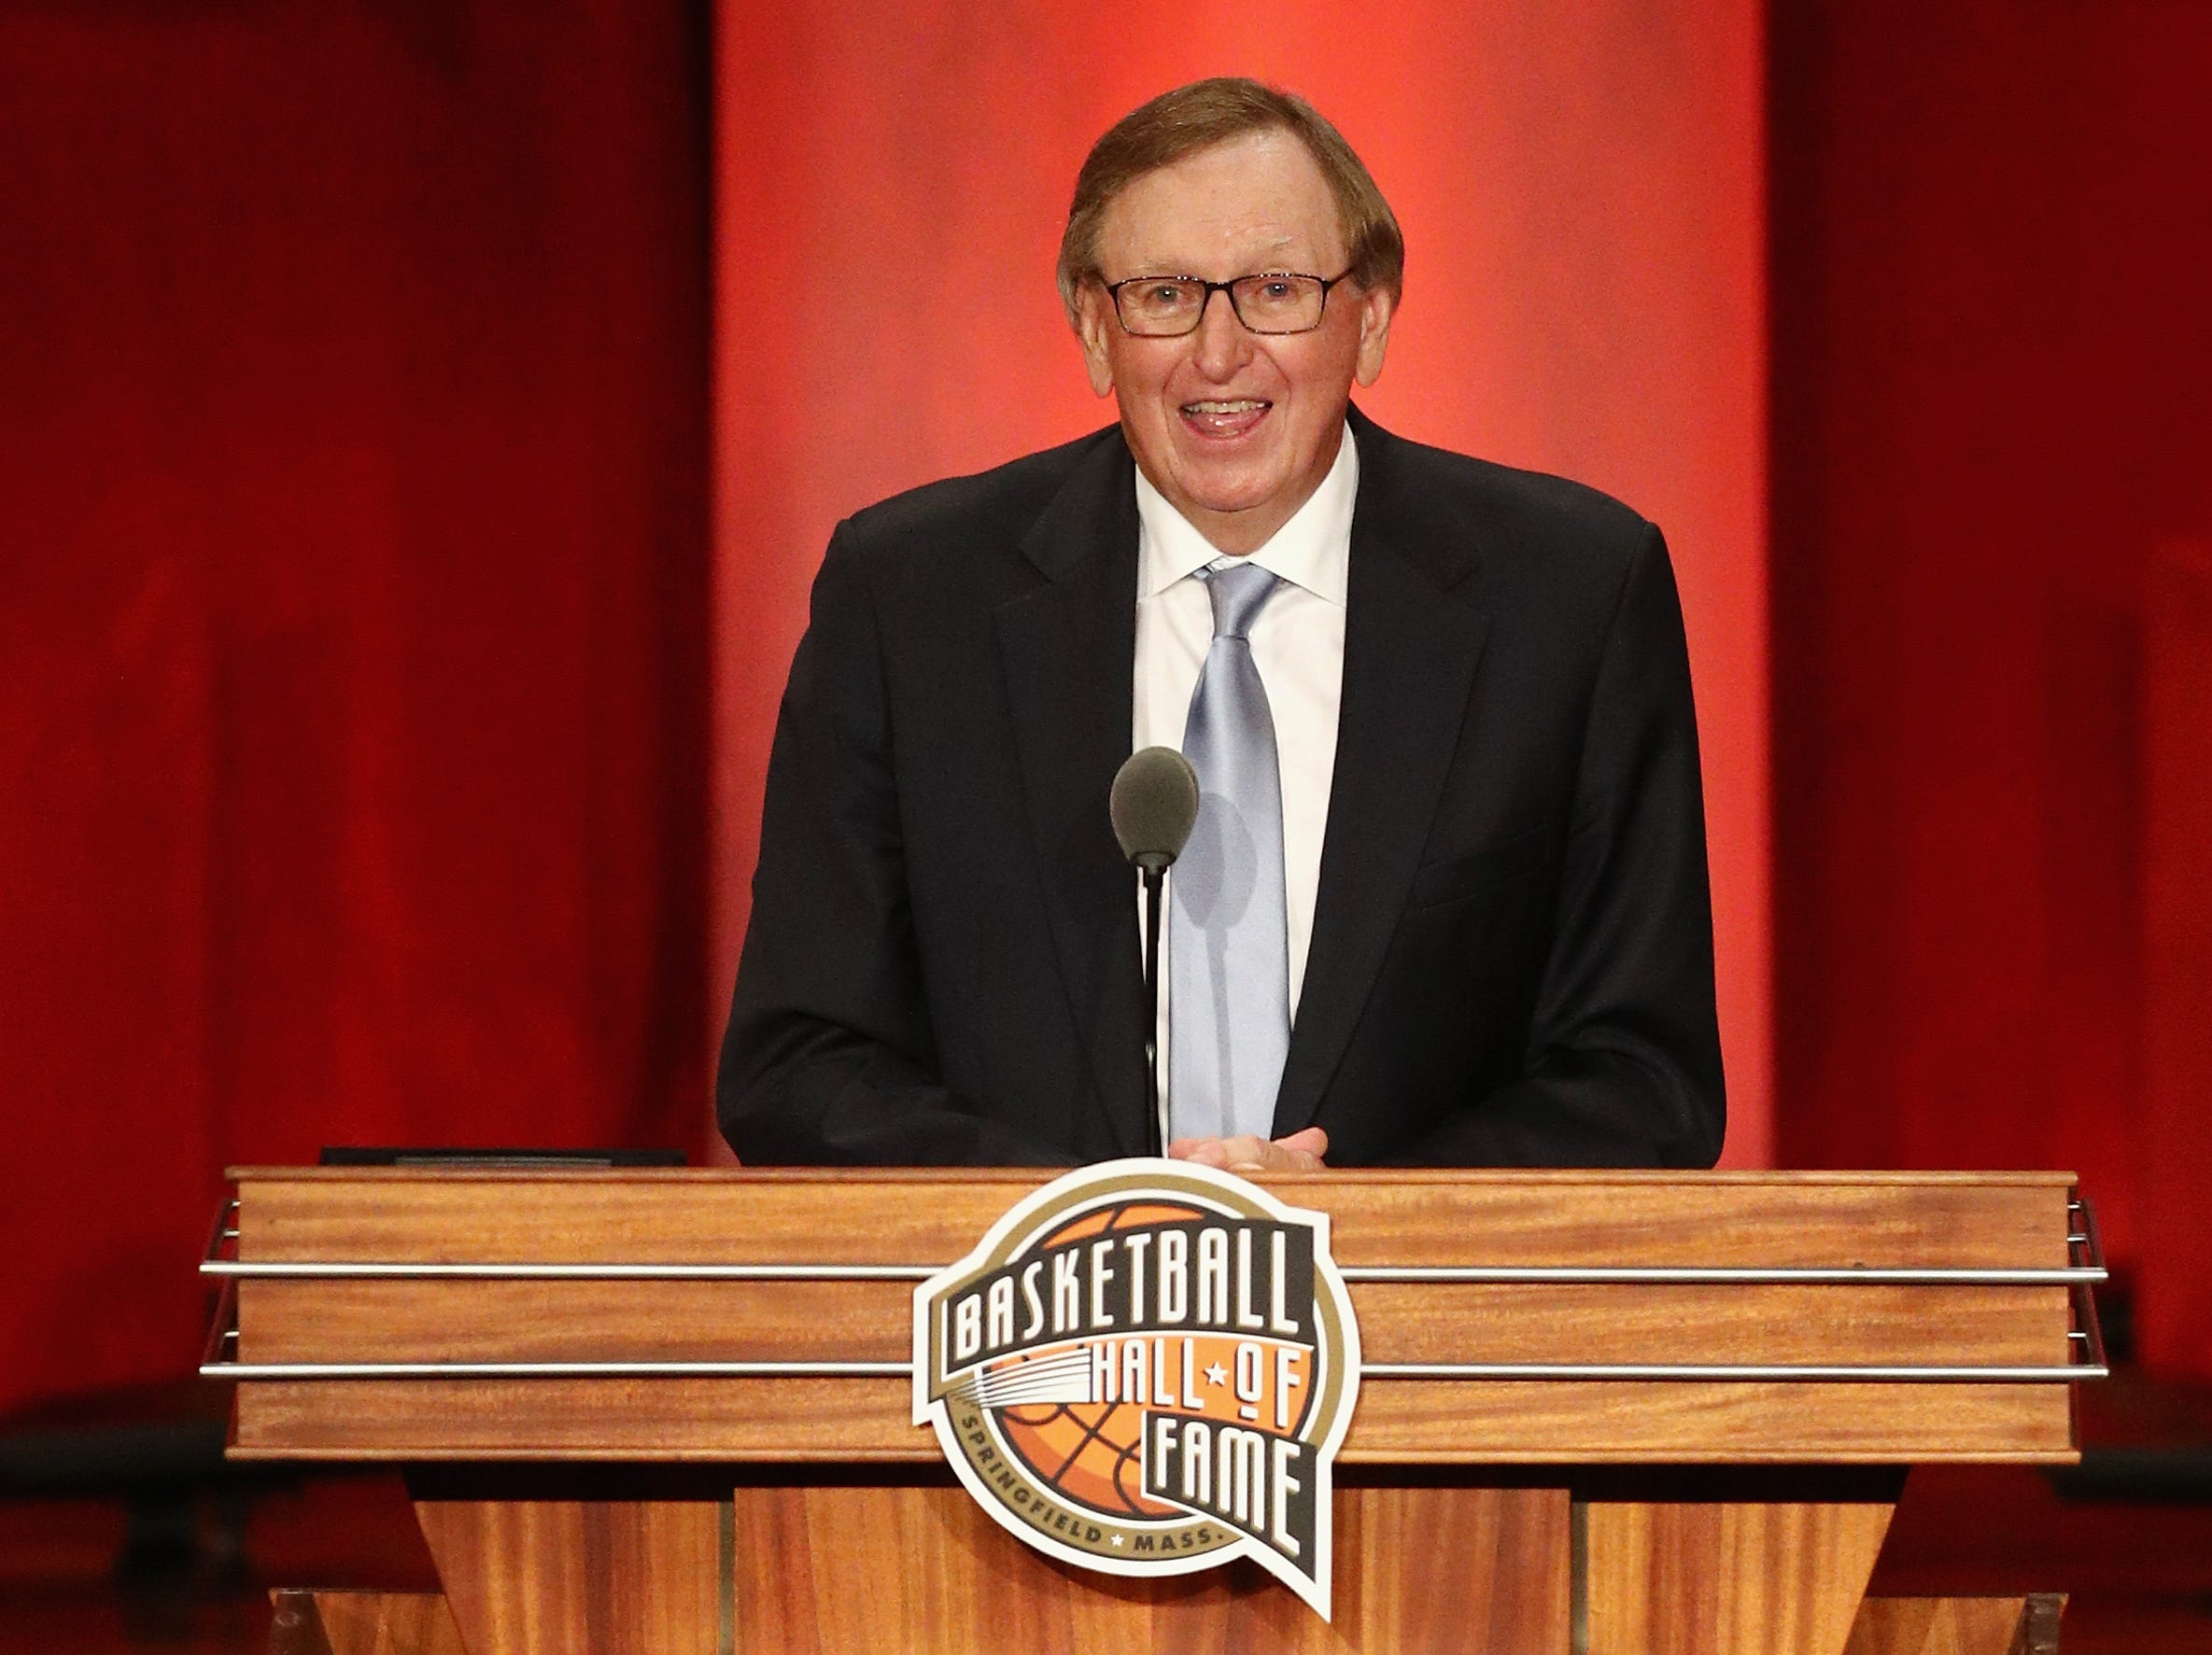 Rod Thorn speaks during the 2018 Basketball Hall of Fame Enshrinement Ceremony.